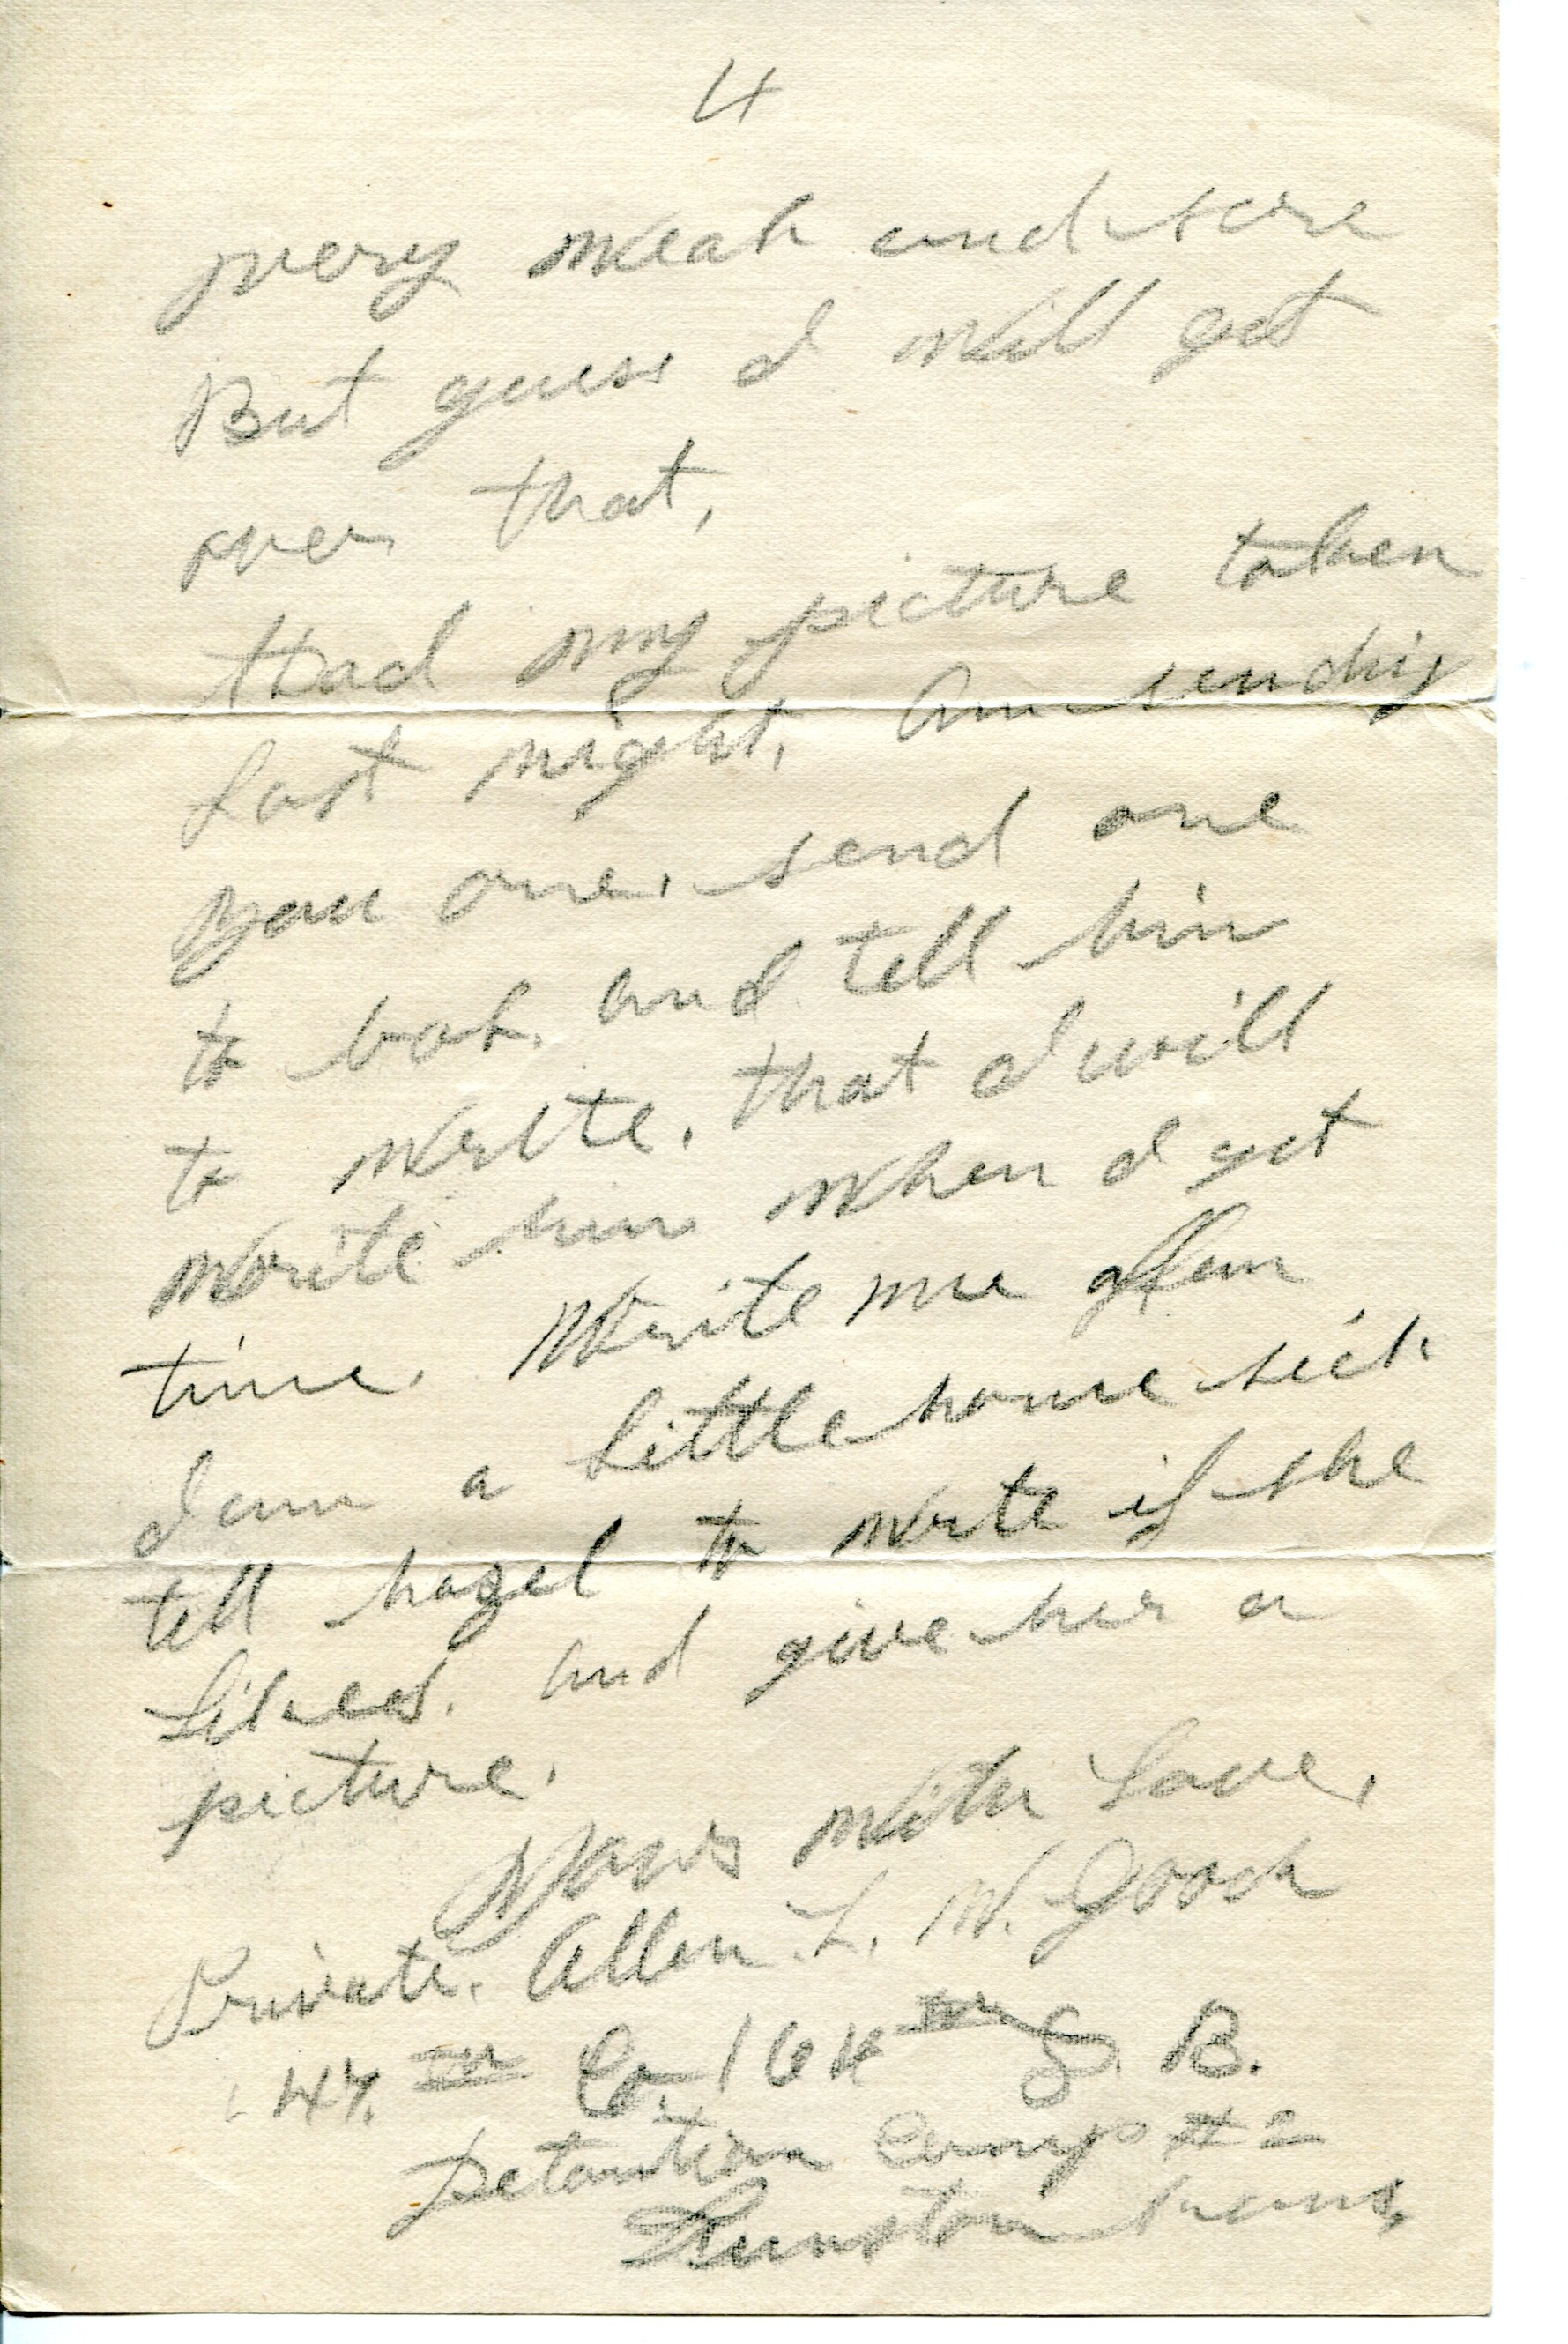 a lertter from the trenches A letter home from a soldier serving in the trenches of ww1, an uncensored letter that could have been sent from the war.